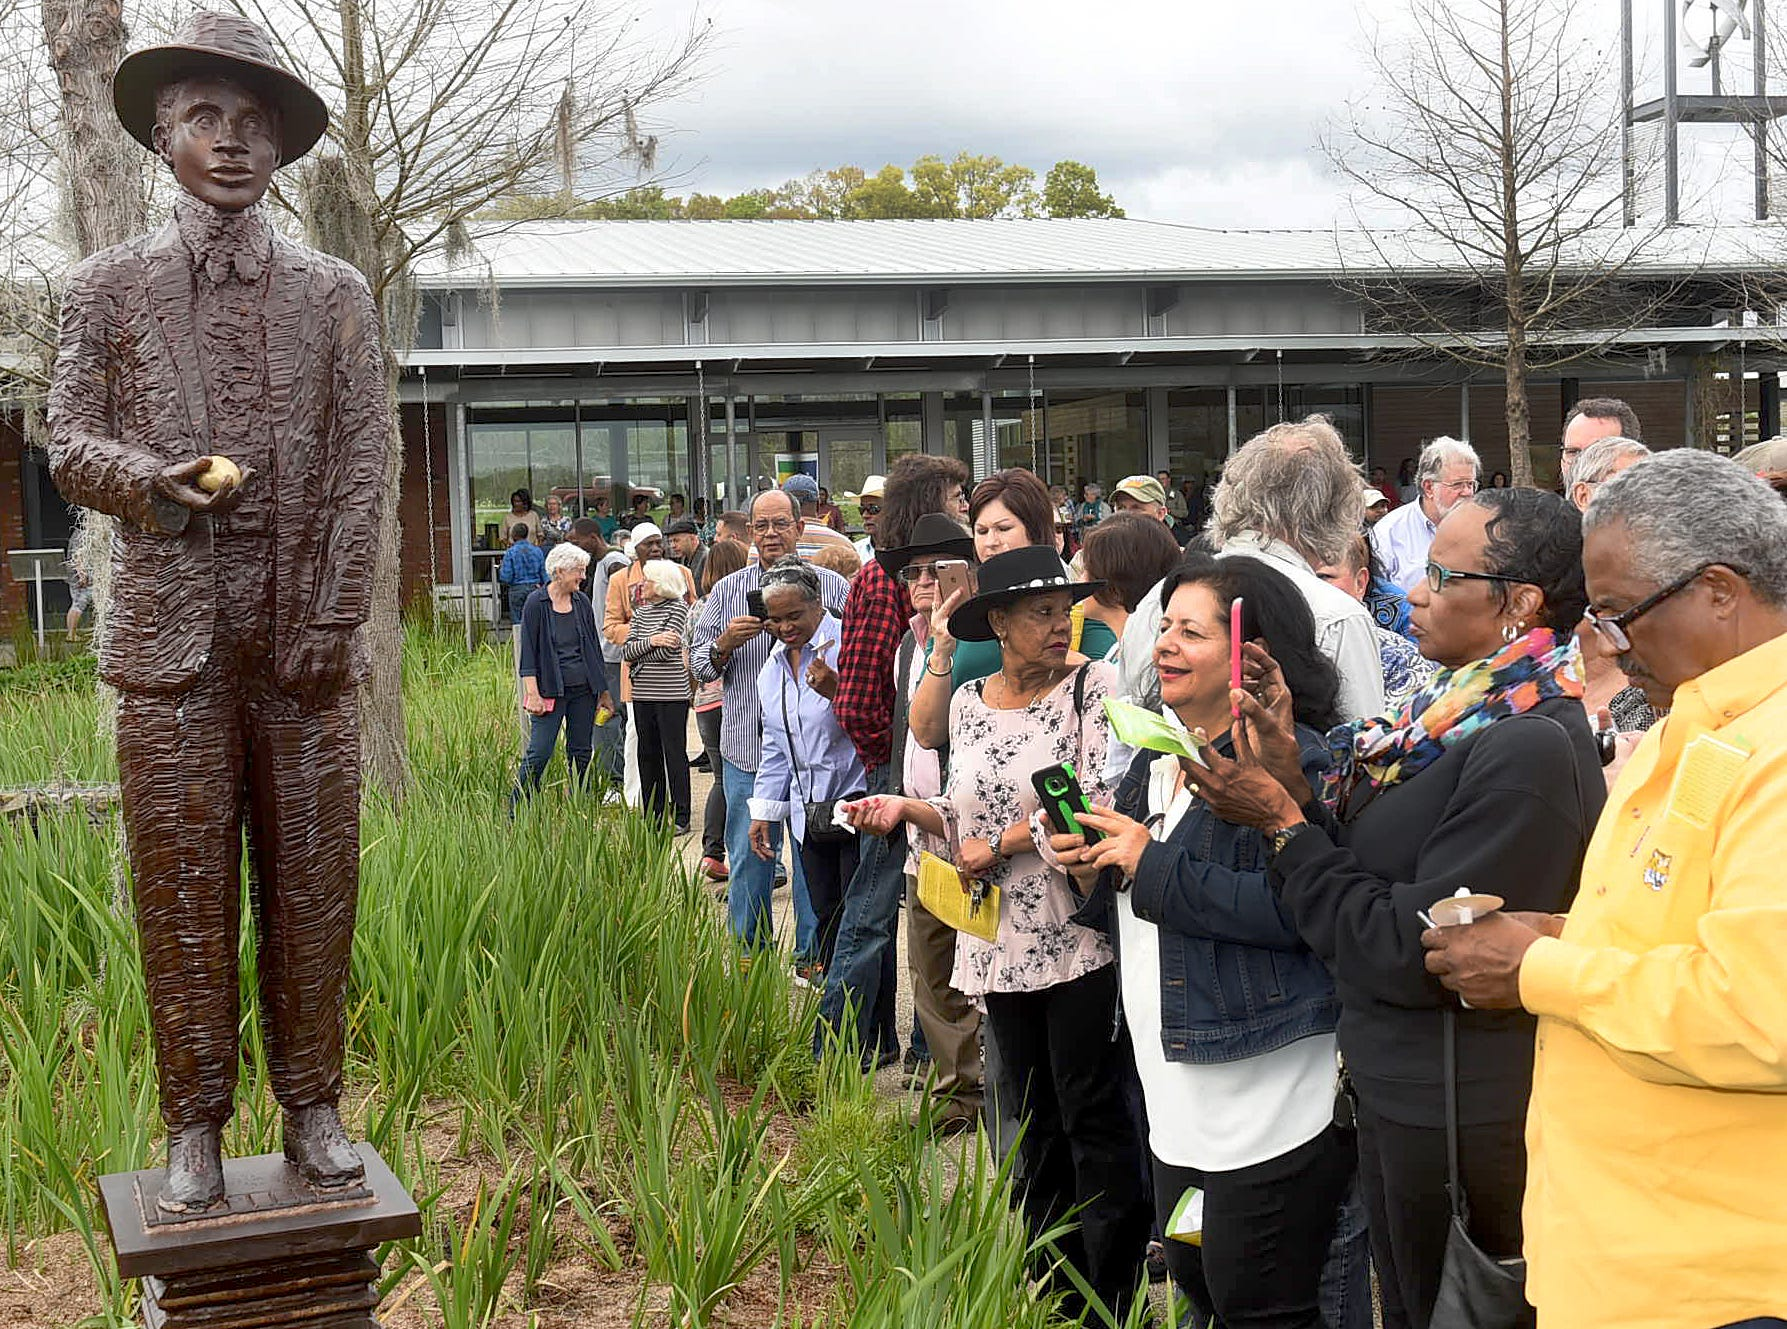 A life size statue of famed Creole musician Amede Ardoin was unveiled at the St. Landry Parish Tourist and Information Center in 2018